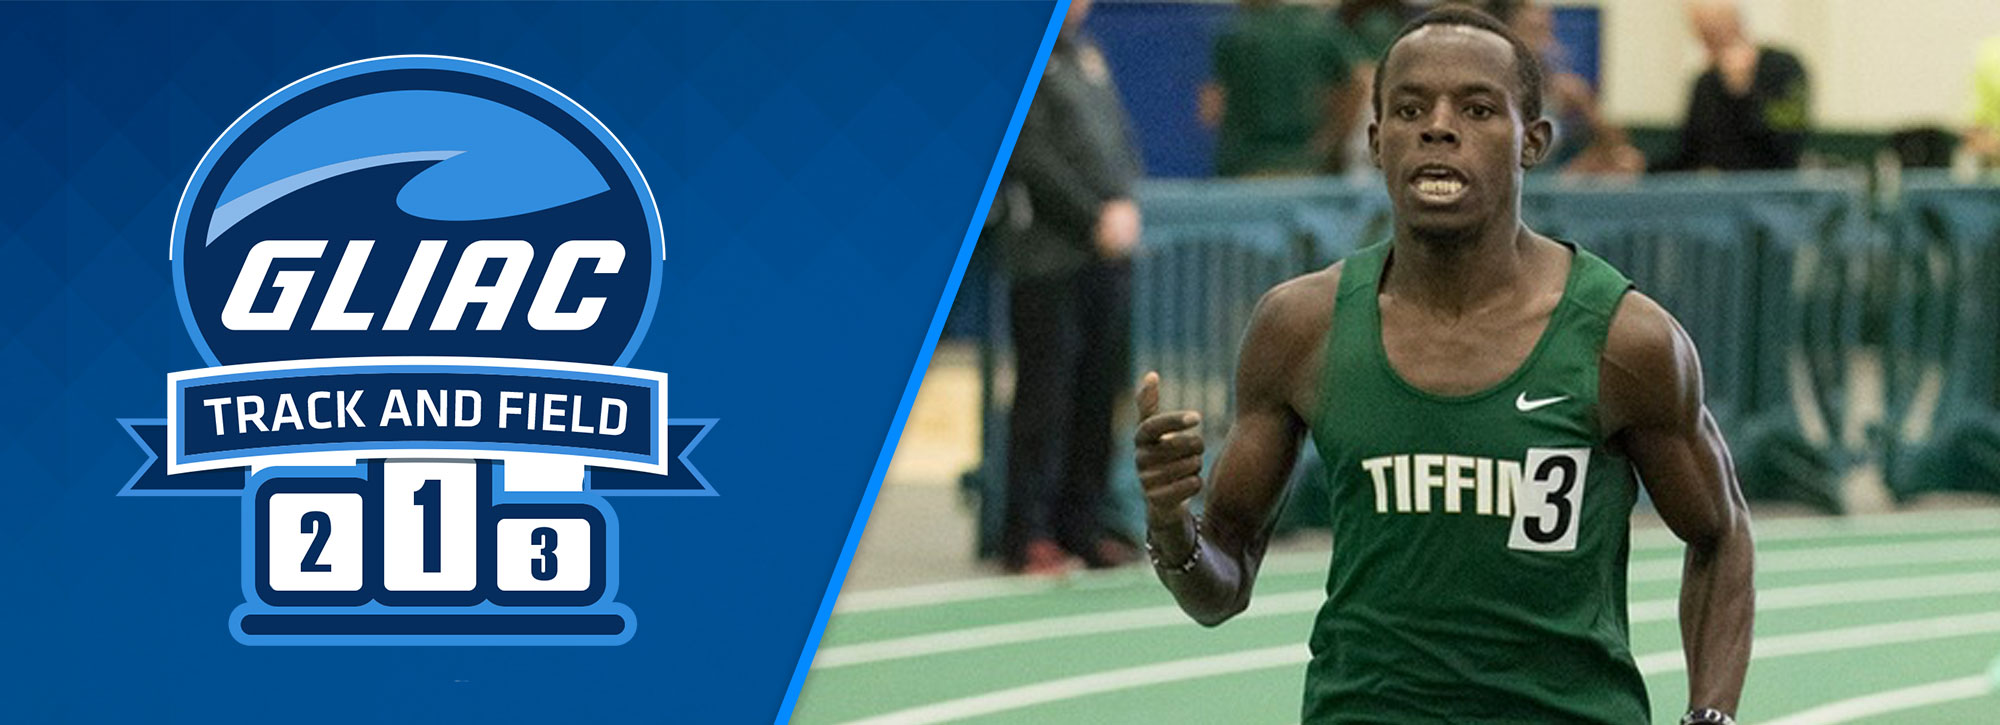 Tiffin's Ngandu Named USTFCCCA National Track Athlete of the Week